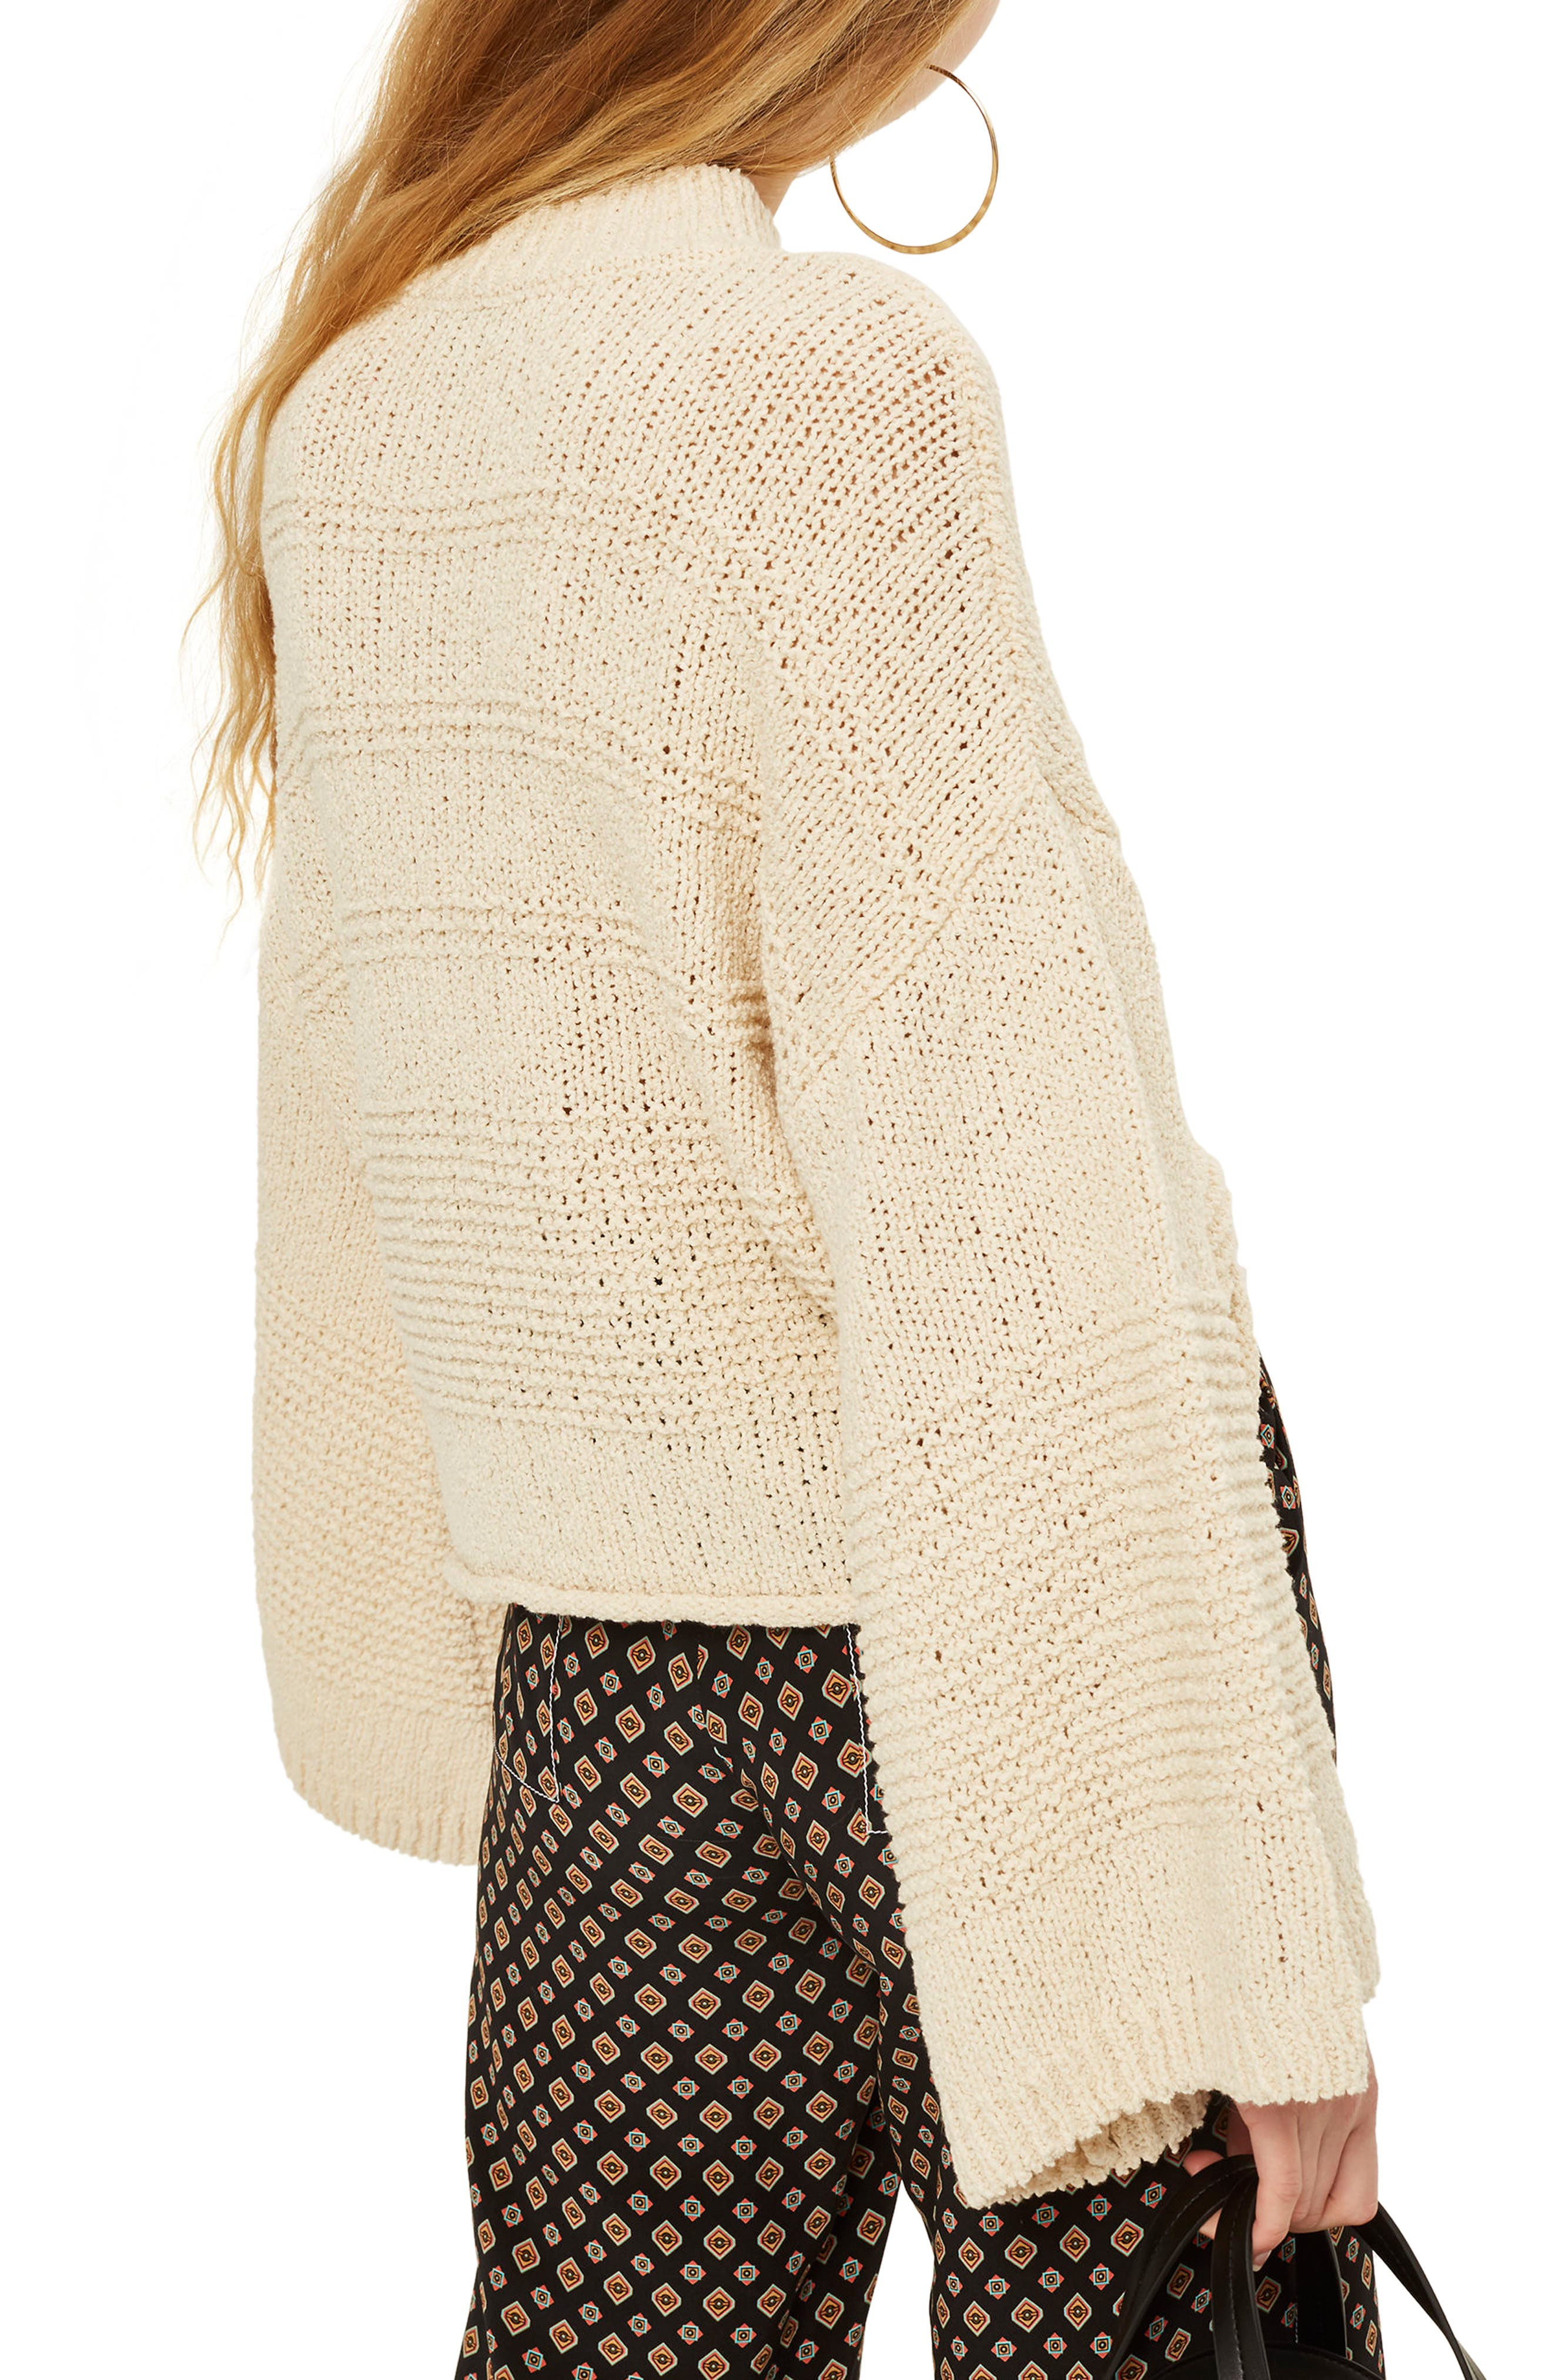 Natural Yarn Bell Sleeve Sweater,                             Alternate thumbnail 2, color,                             Ivory